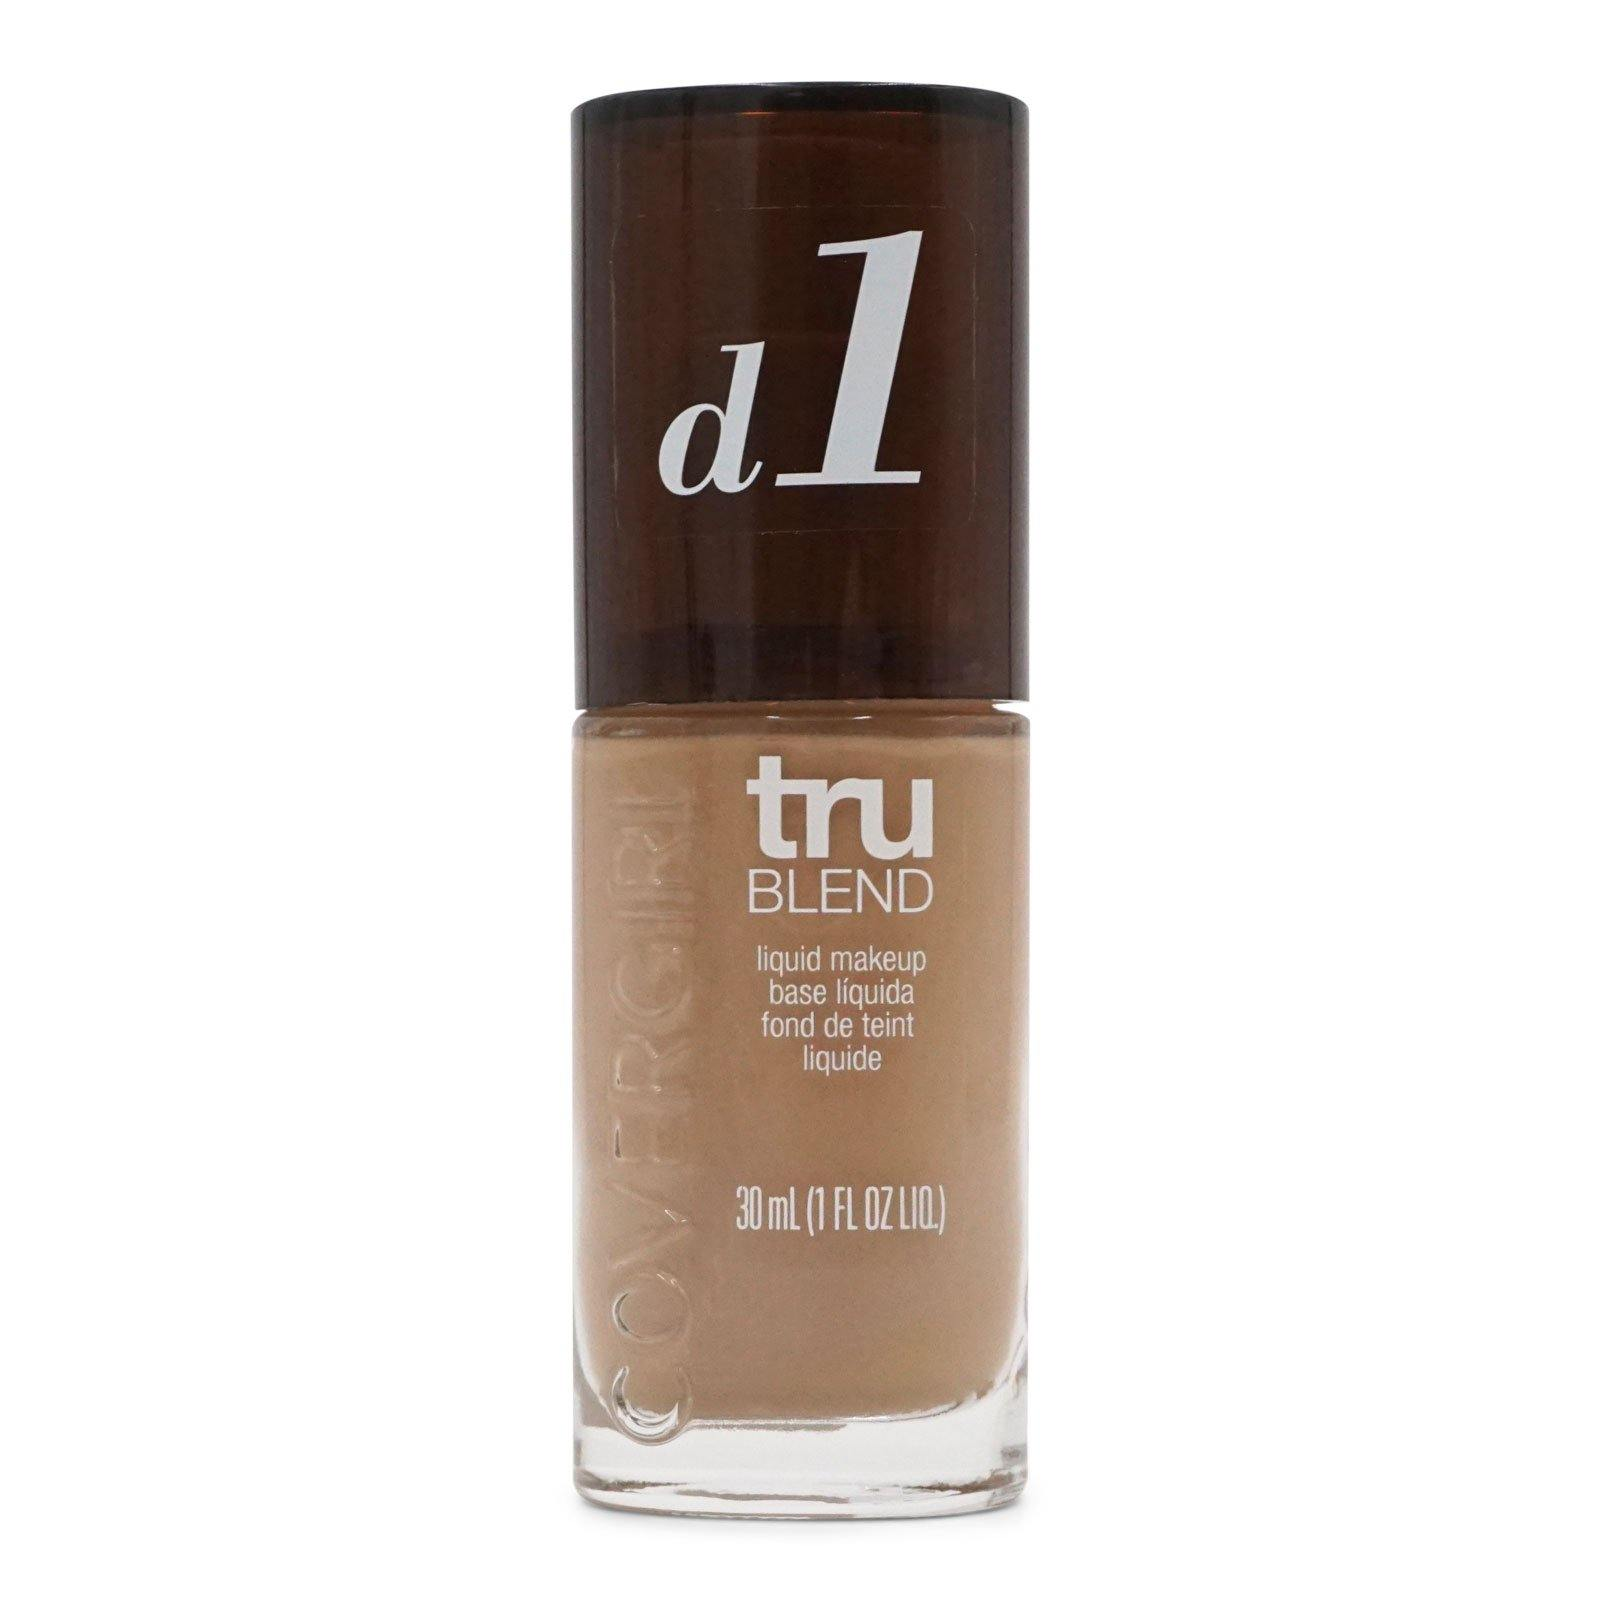 Covergirl True blend Liquid Makeup, Creme Beige (24/cs)